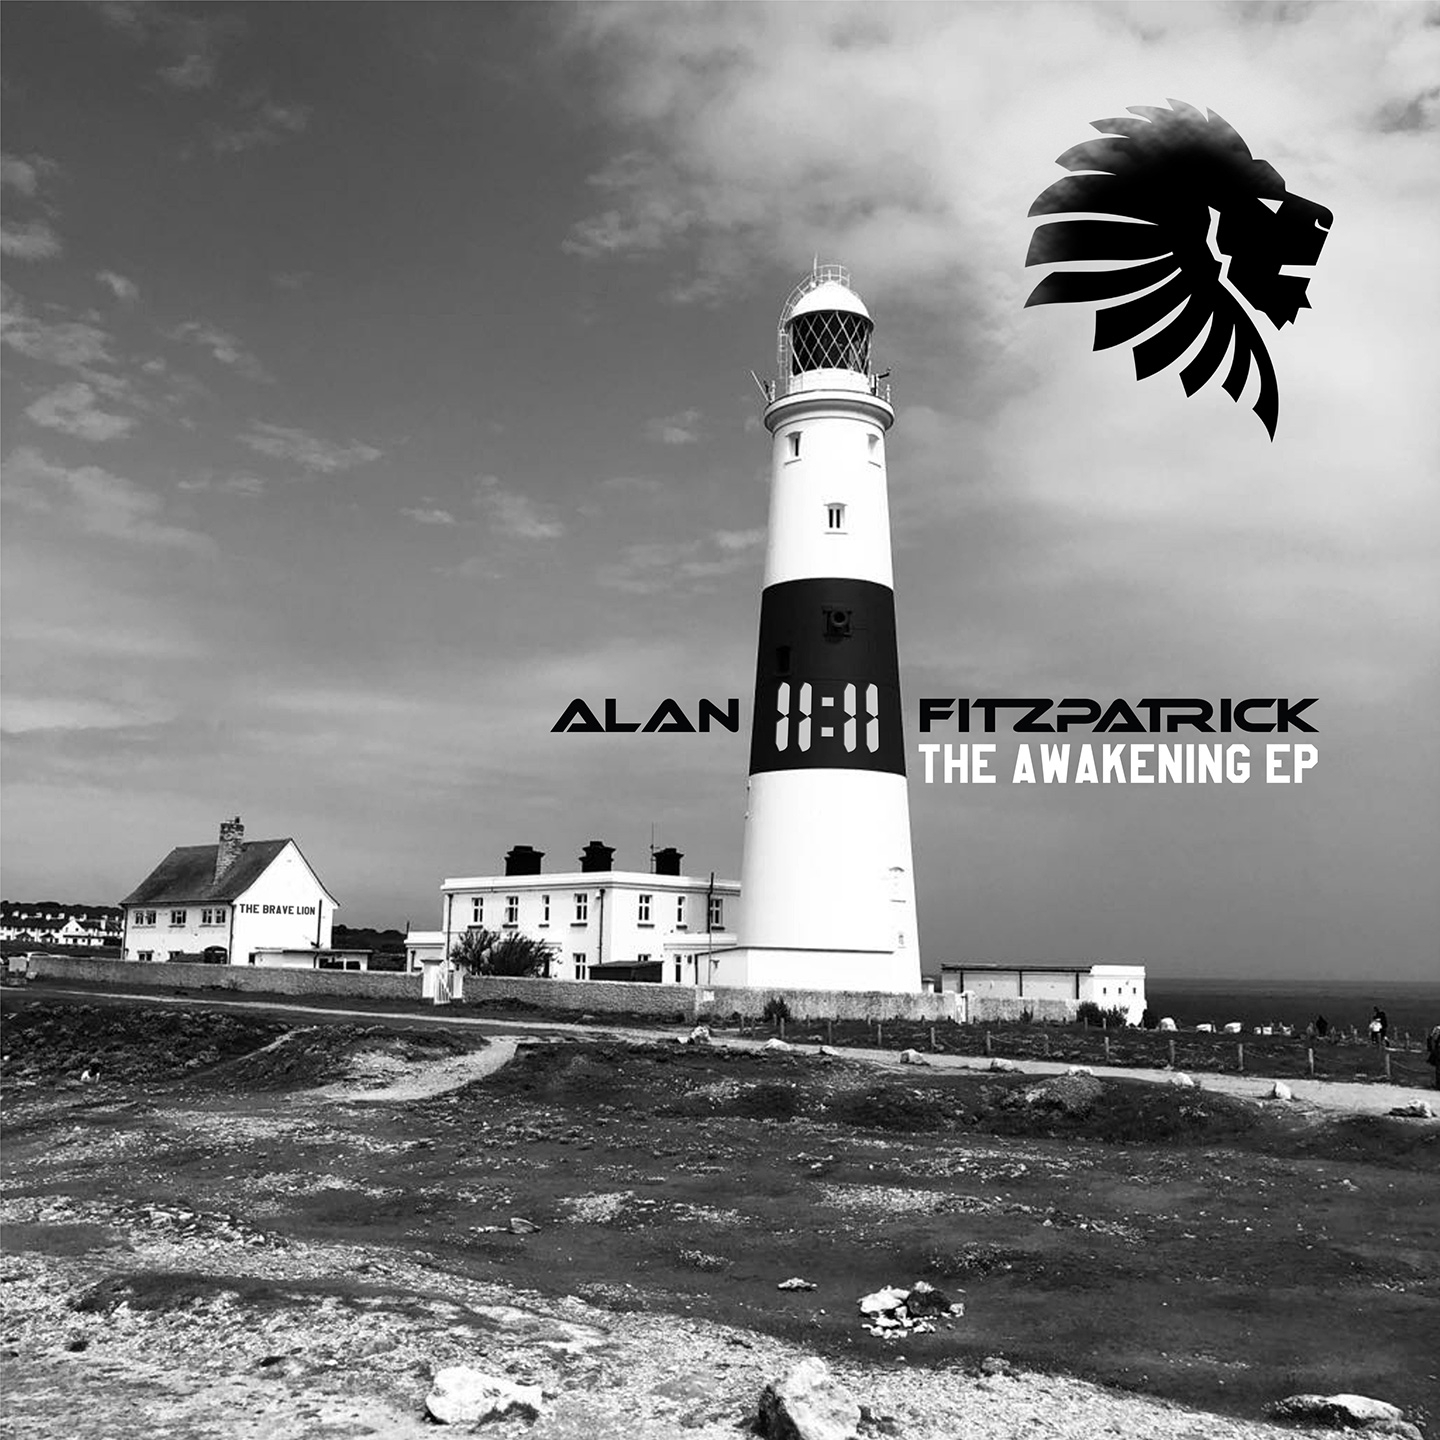 Alan Fitzpatrick - The Awakening EP